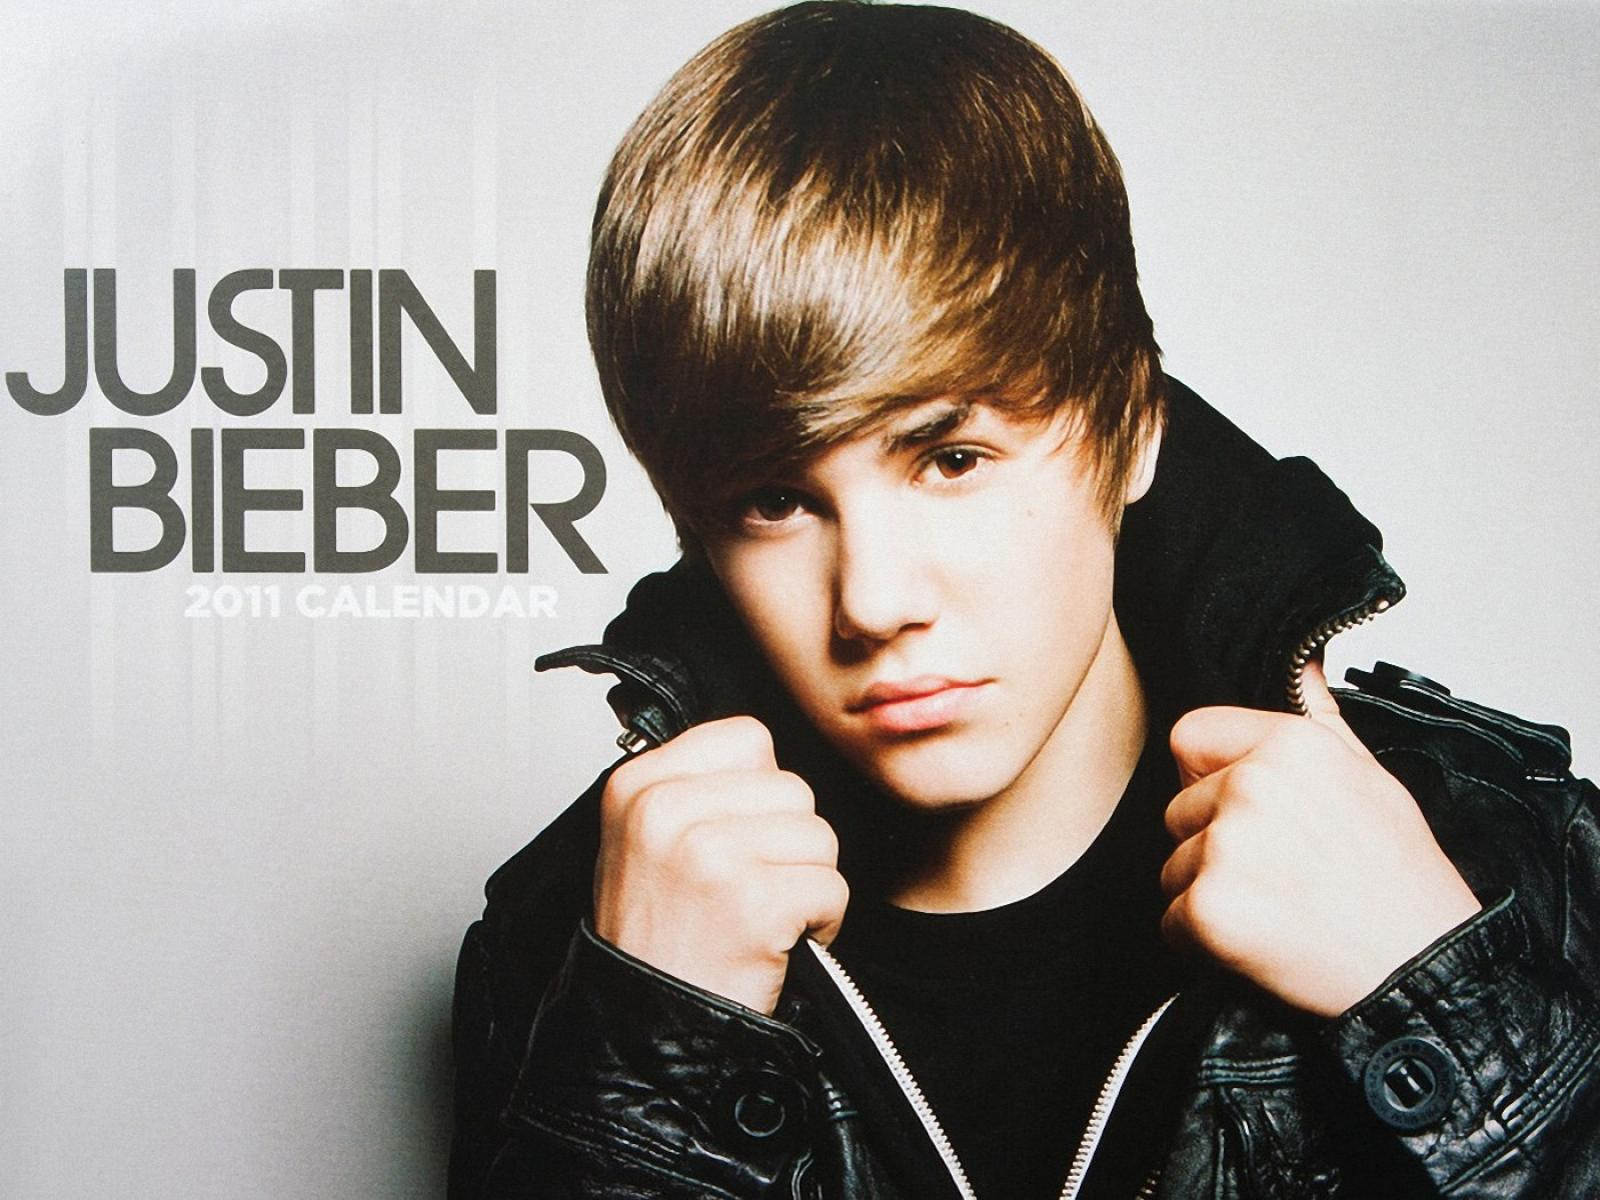 Justin Bieber Wallpapers High Quality | Download Free